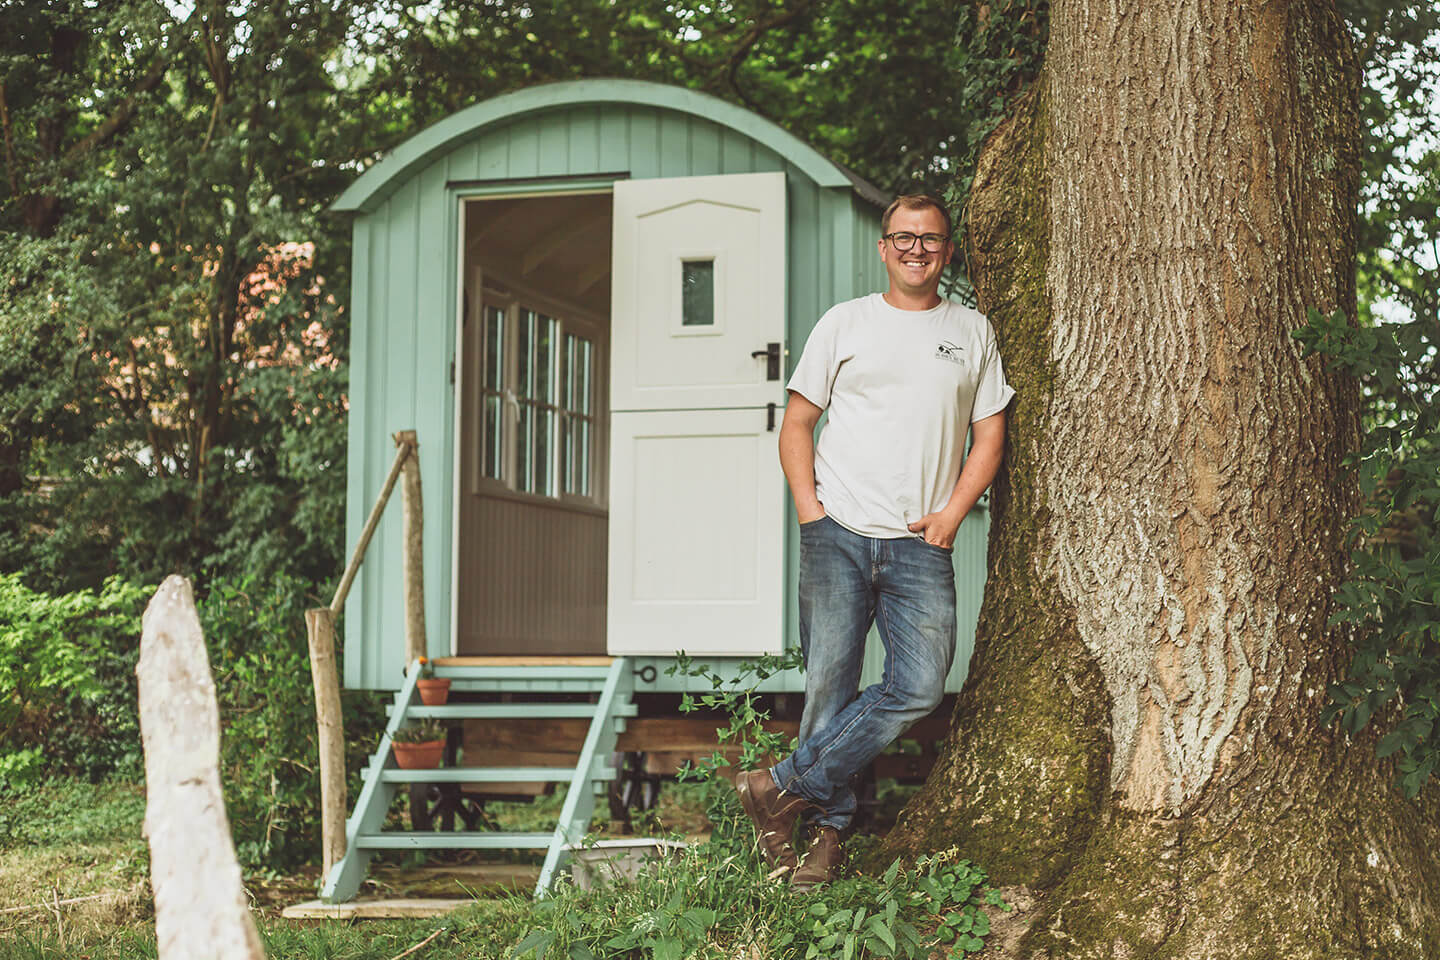 Meet Joe - The heart of Sussex Huts